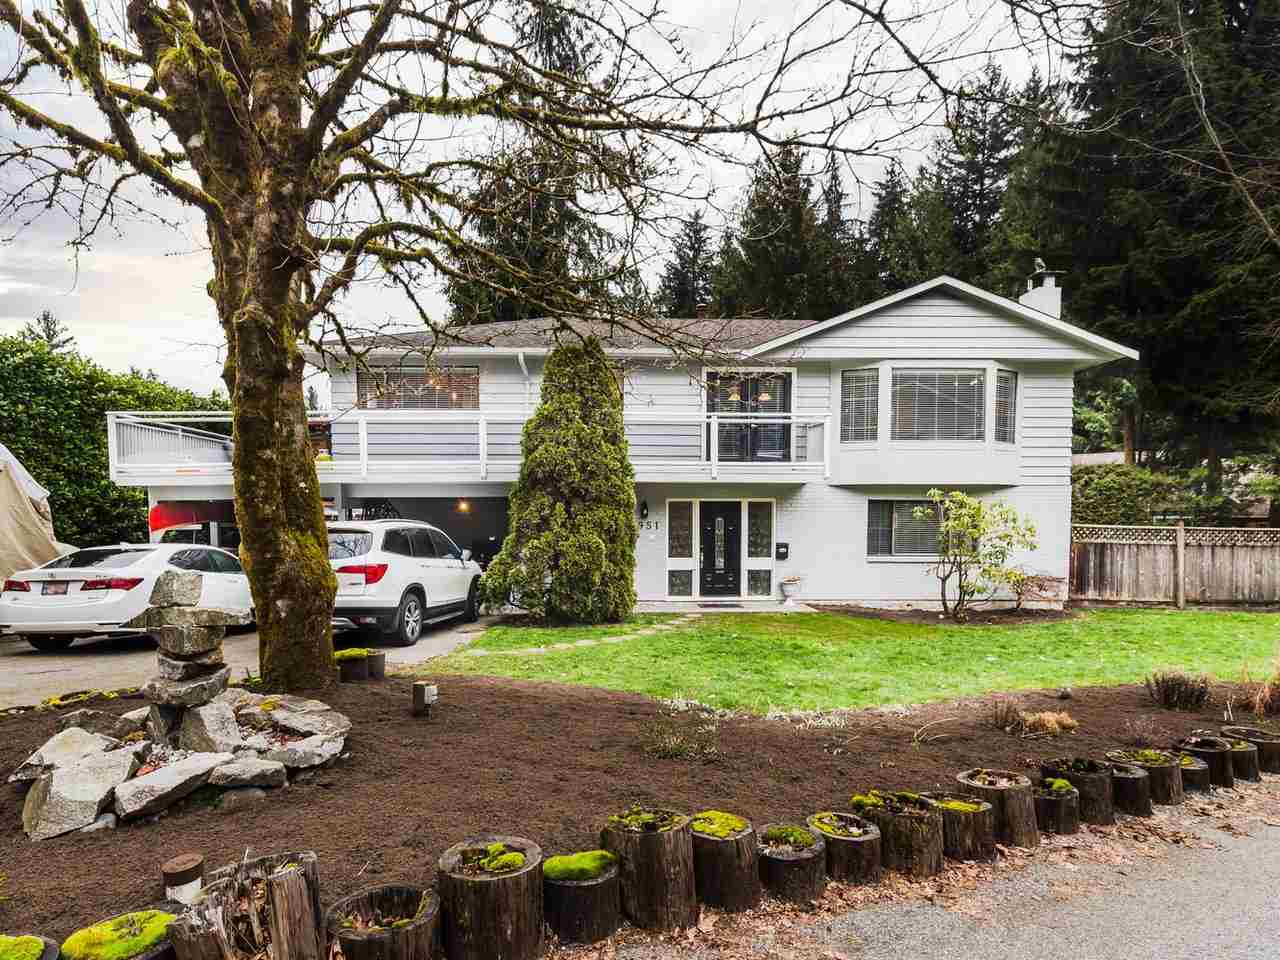 951 HENDECOURT PLACE - Lynn Valley House/Single Family for sale, 4 Bedrooms (R2558686) - #1